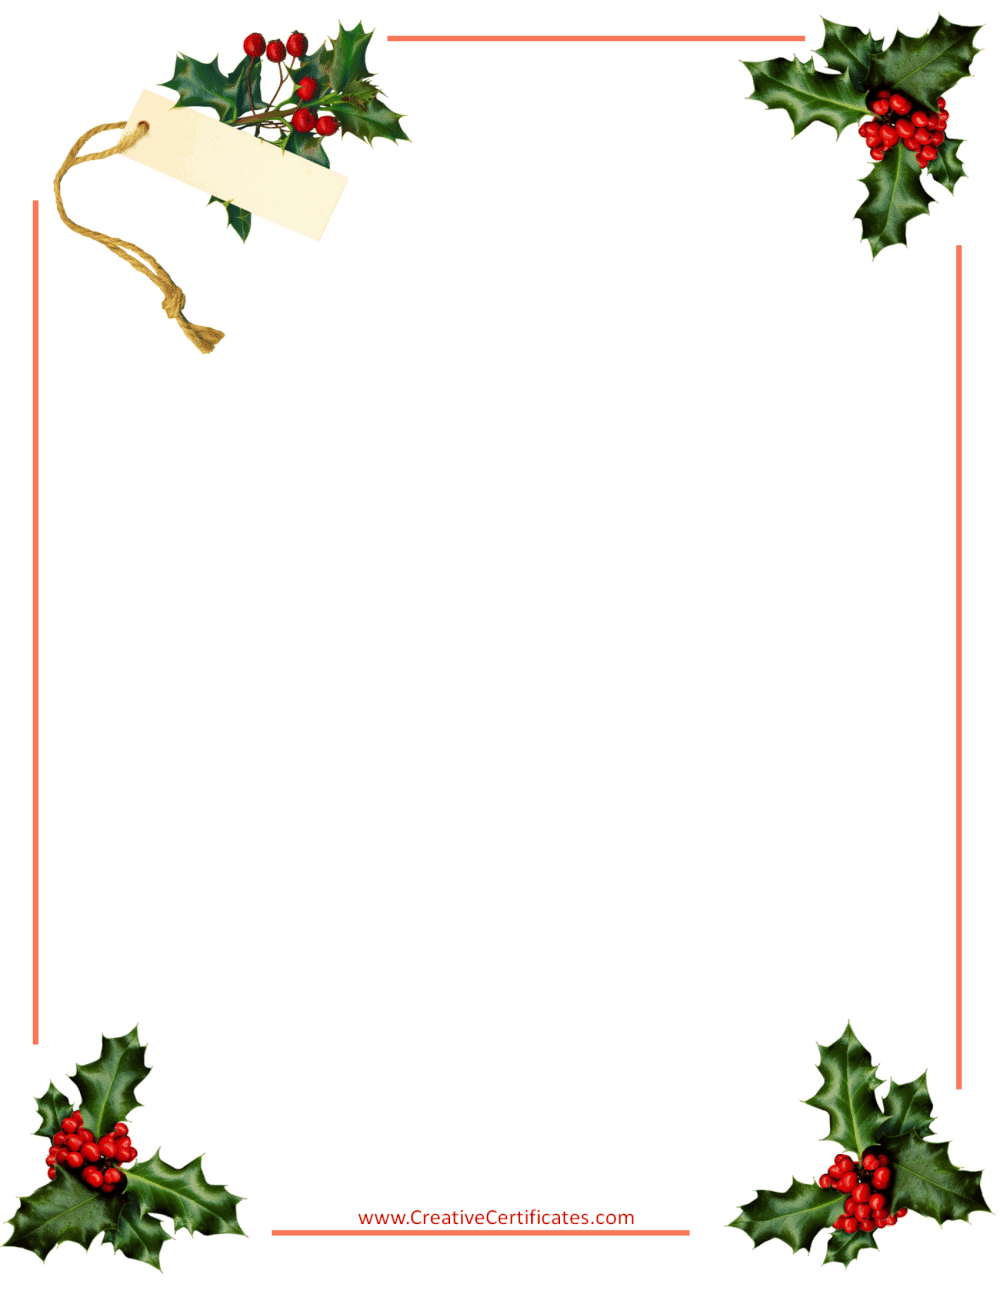 Free Christmas Border Templates - Customize Online then ...